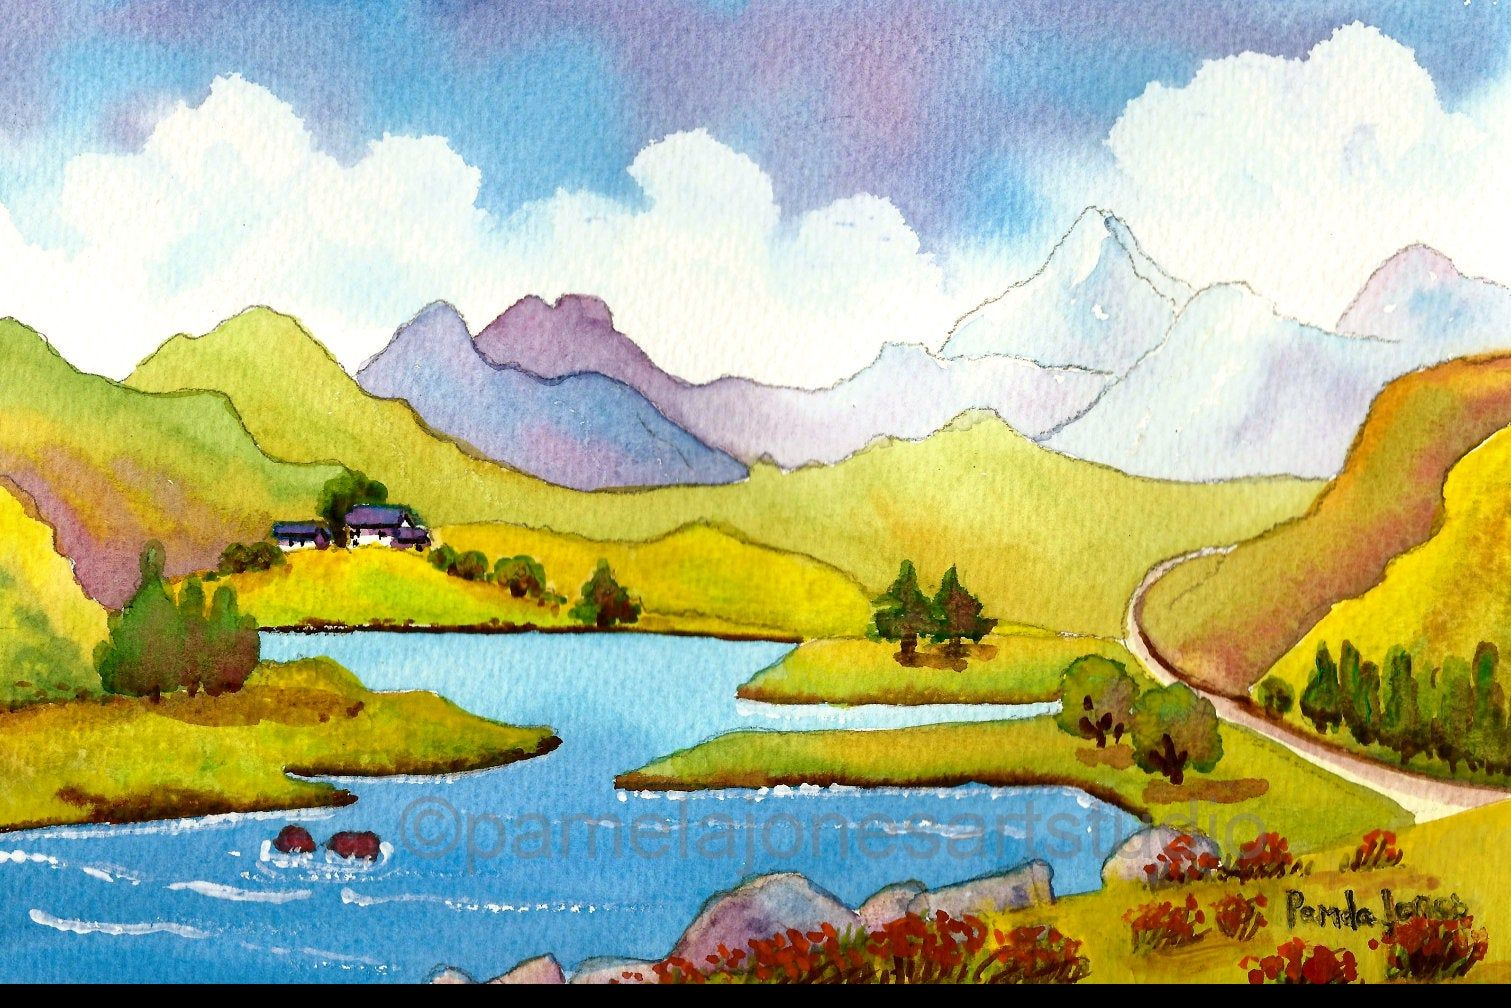 Original Watercolour, Painting, Snowdon, North Wales, Landscape Painting, 14 x 11ins, Gift Idea, Art and Collectibles, Home Decor #northwales